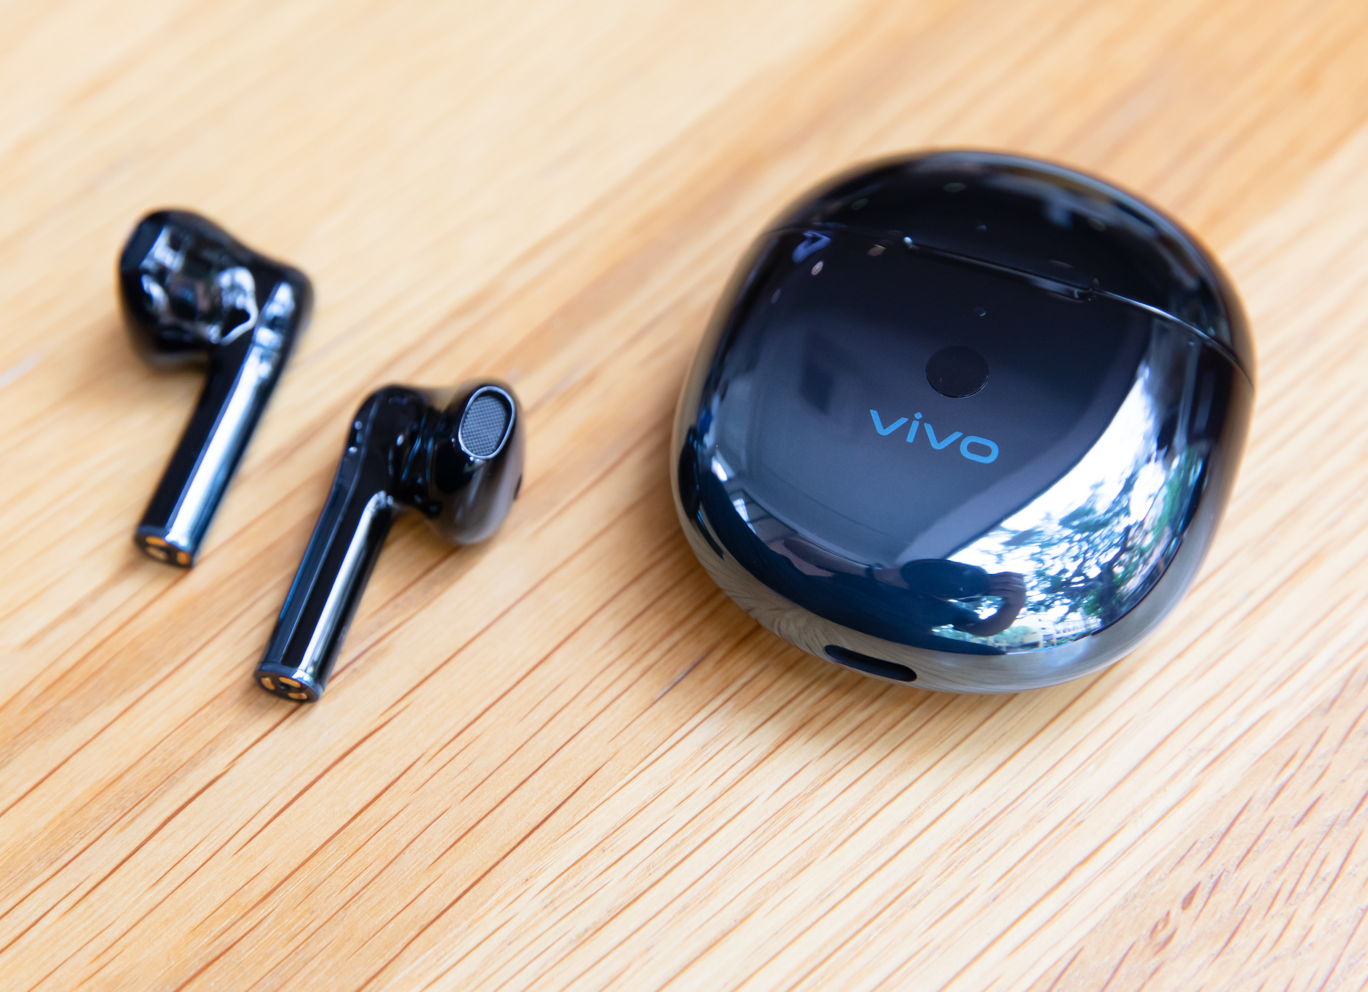 vivo TWS Neo earbuds review